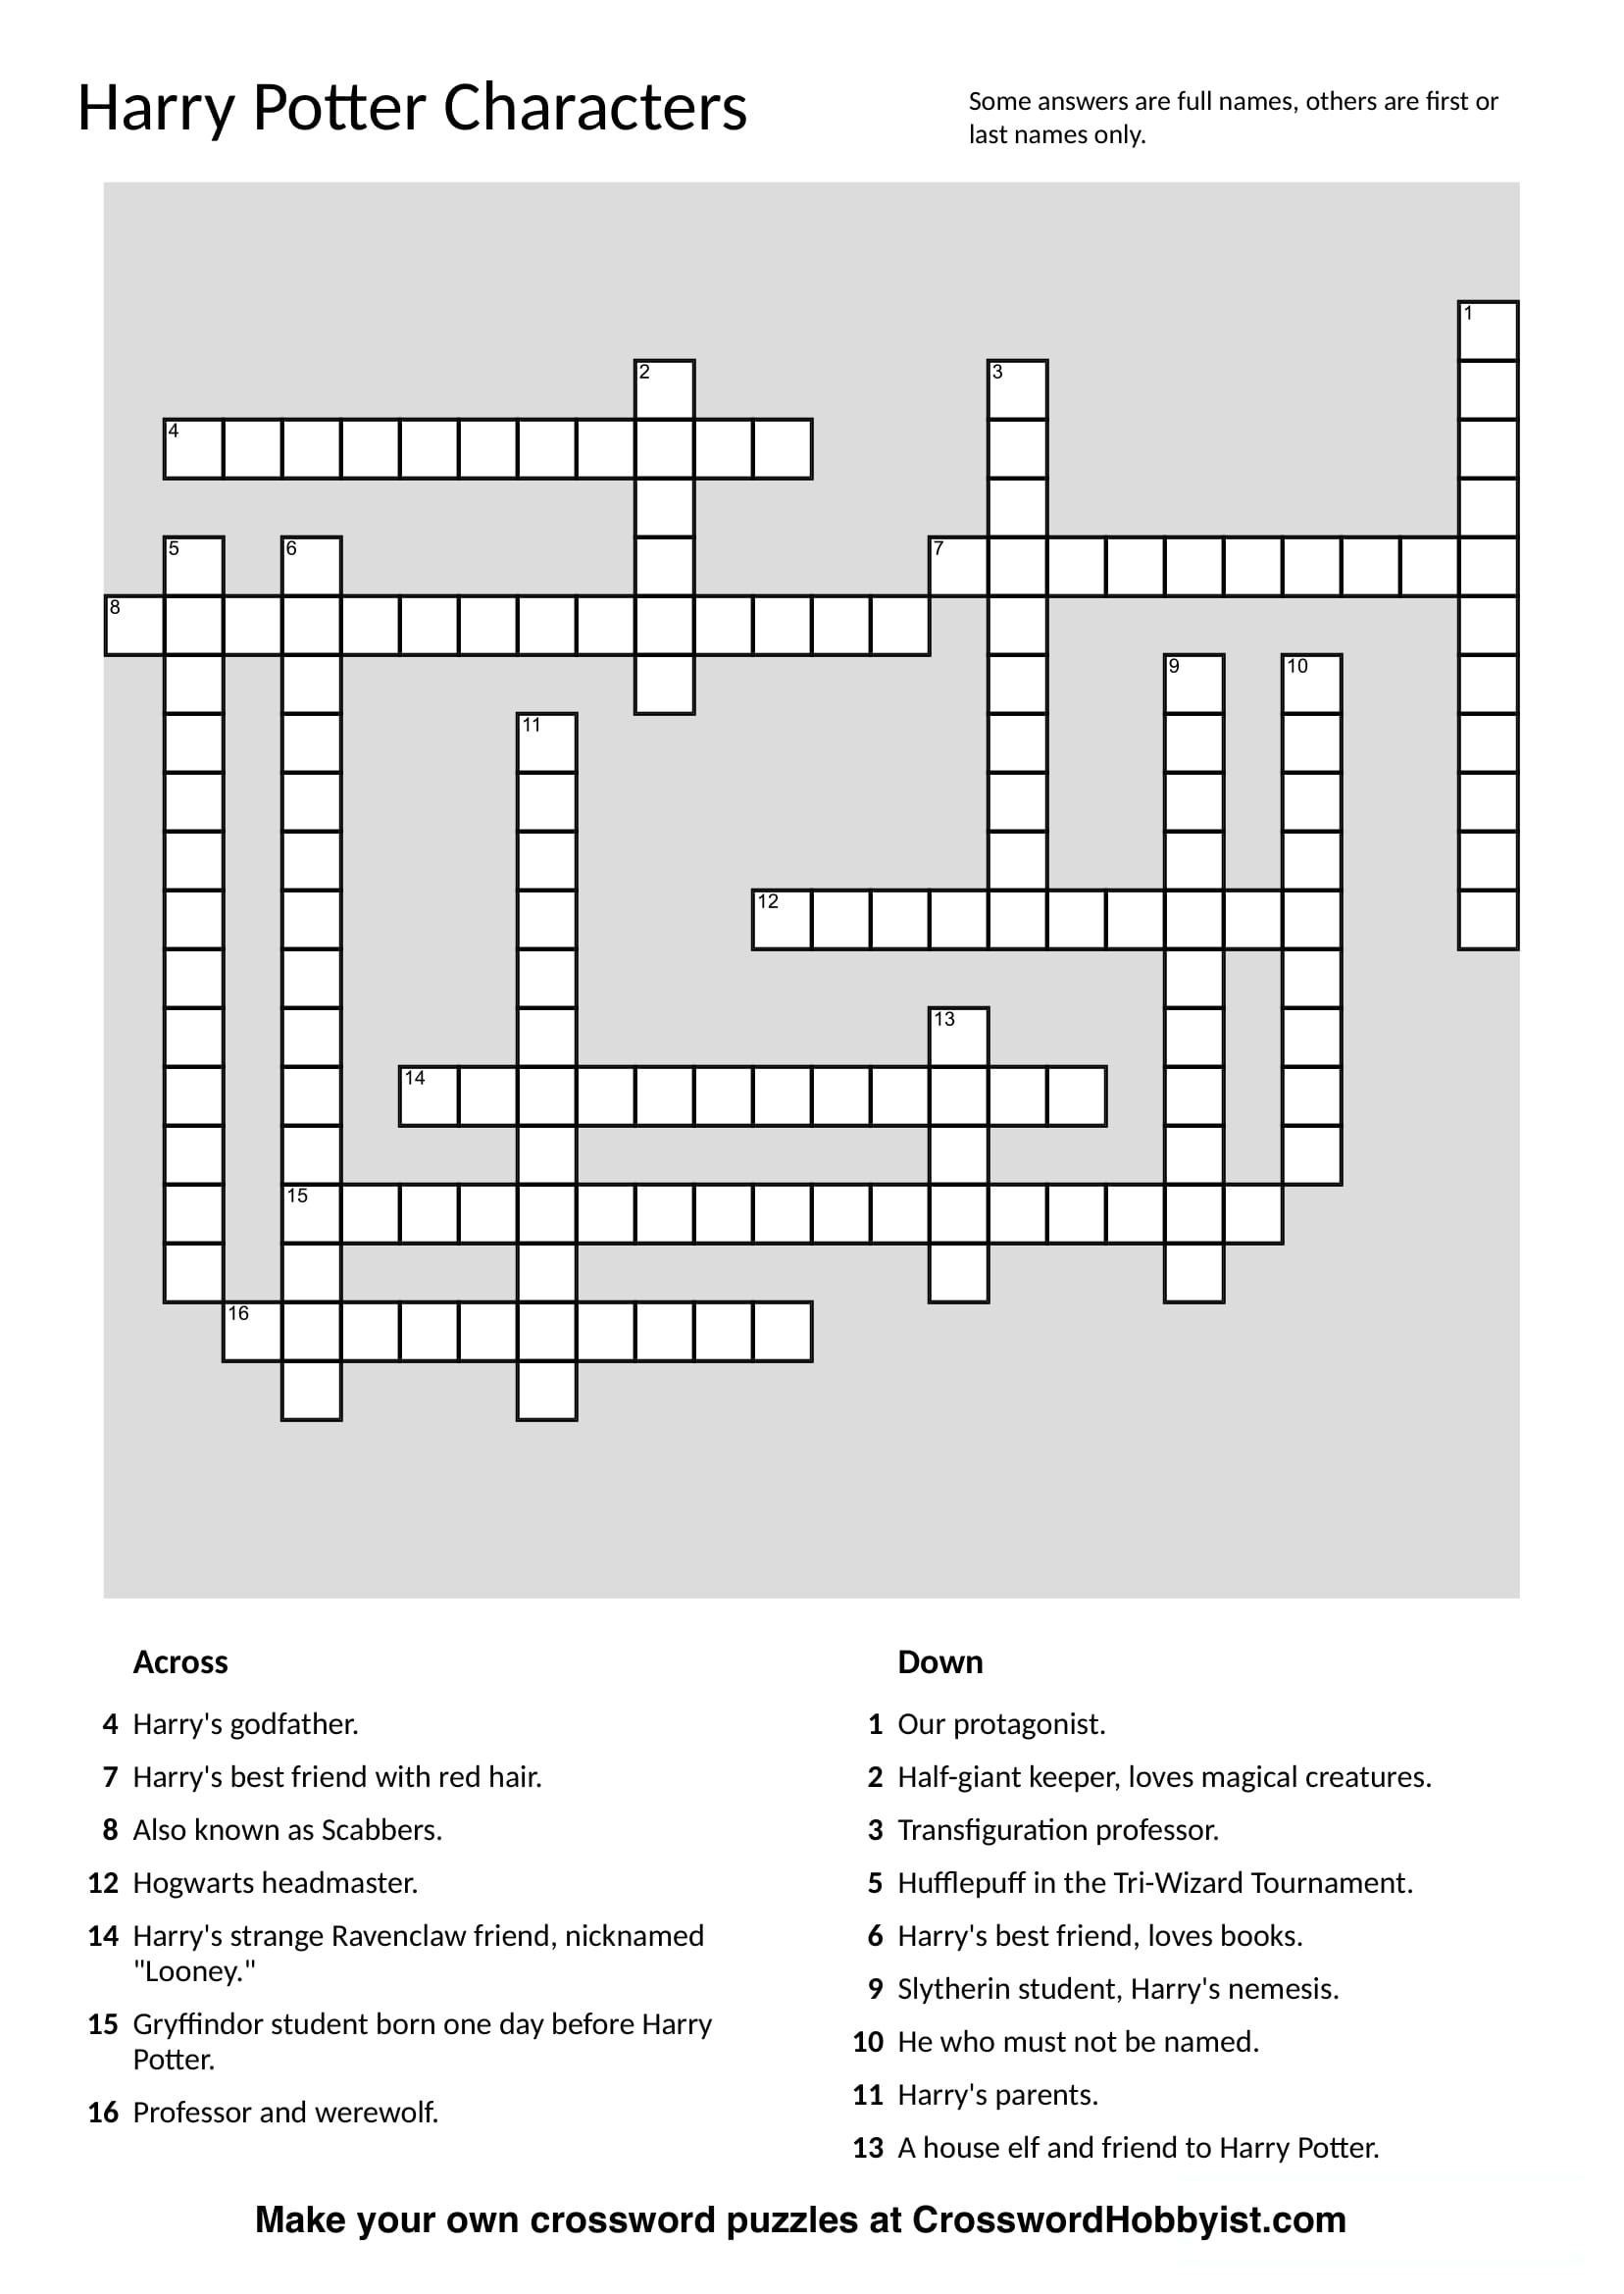 This Harry Potter Characters Crossword Puzzle Was Made At - Free Make Your Own Crosswords Printable